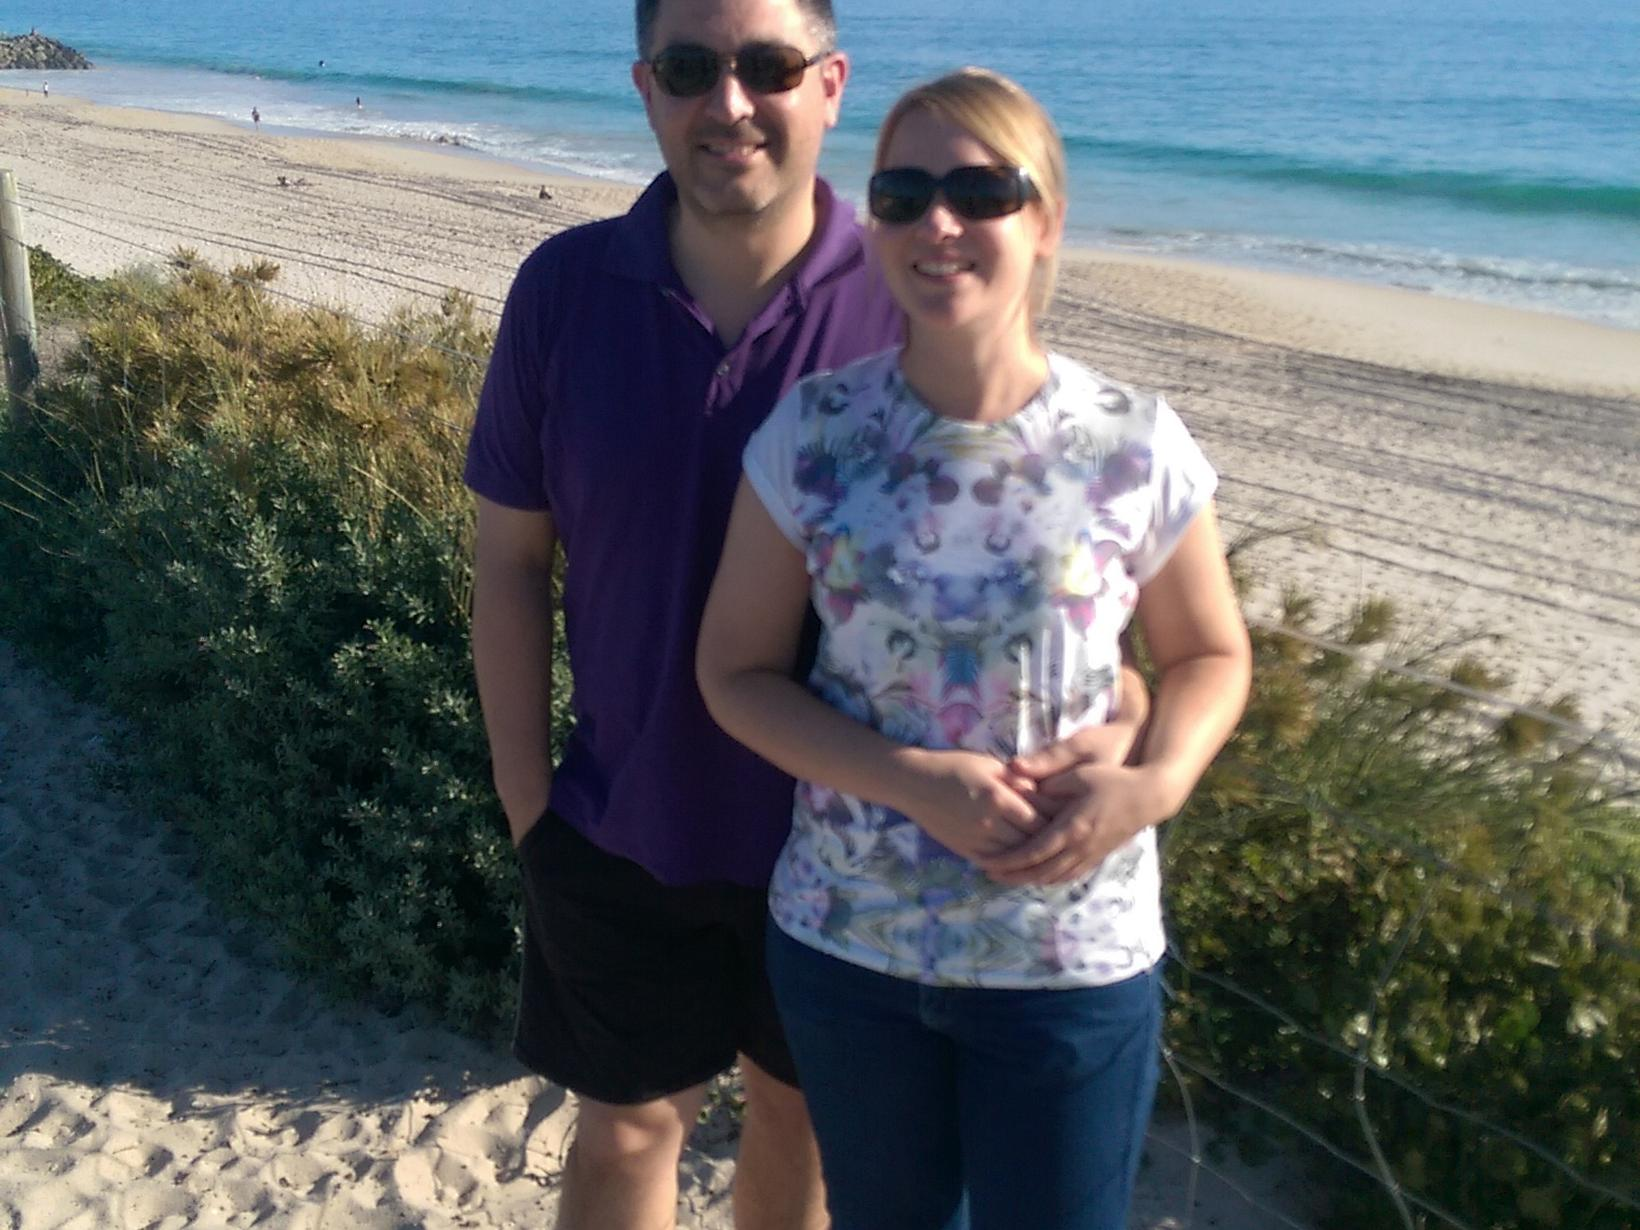 Stuart & Dianne from Hove, United Kingdom